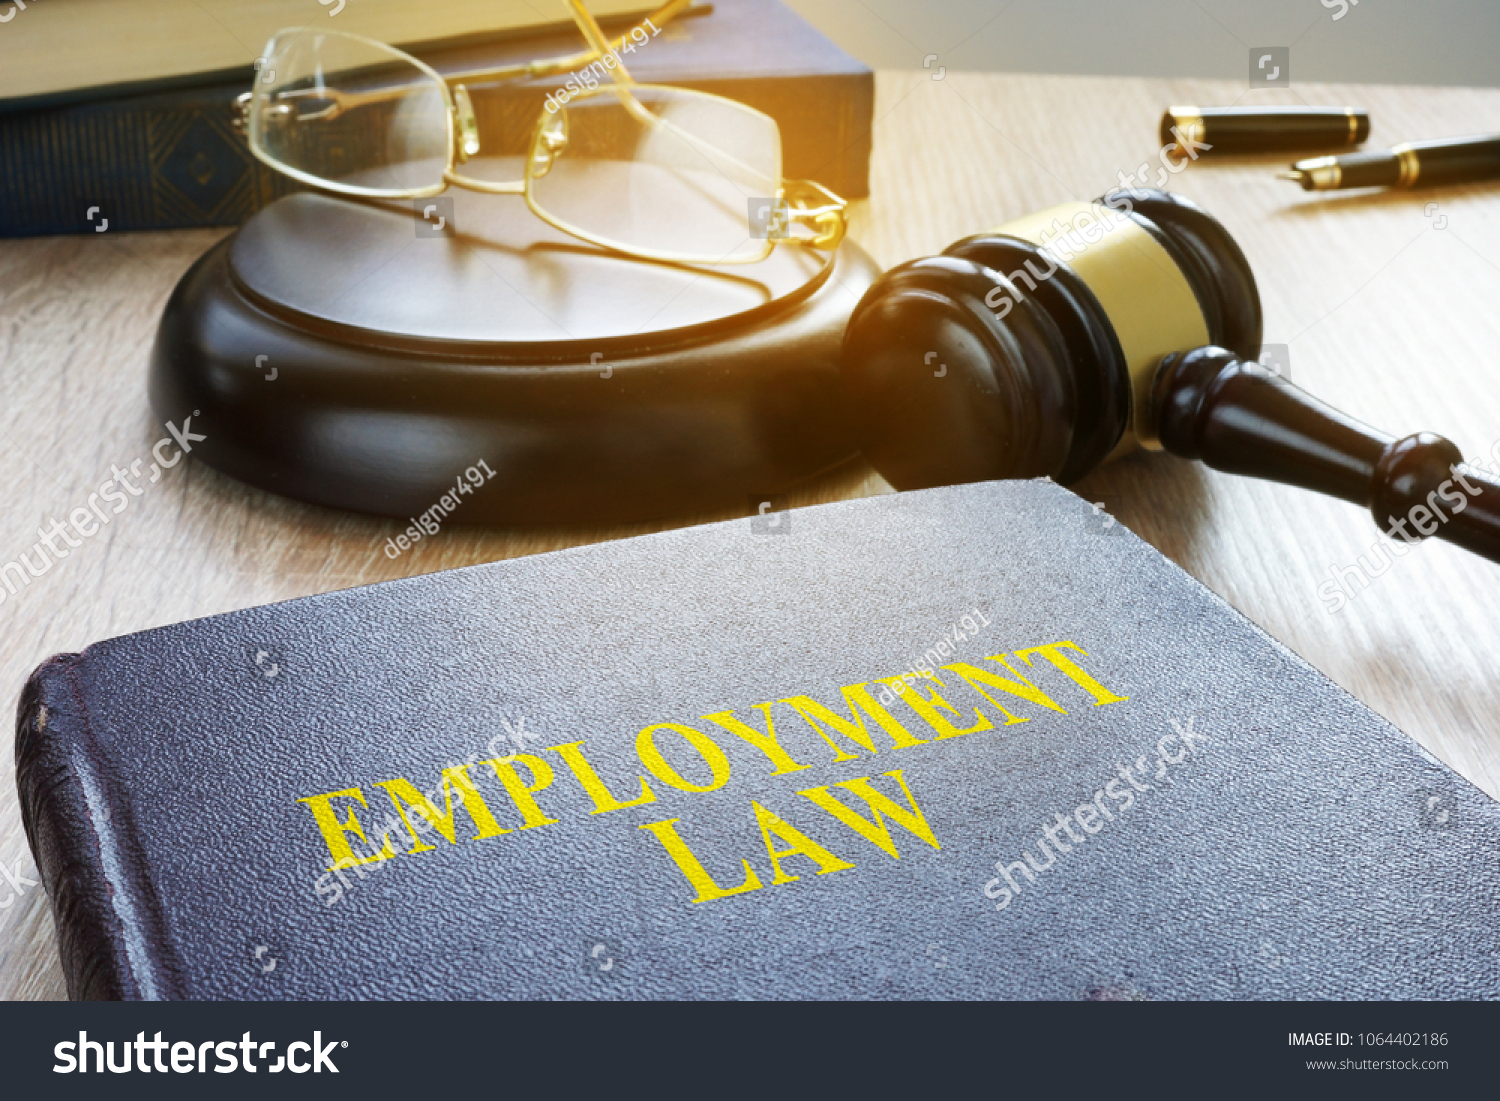 Employment law in a court. Labor code concept. #1064402186